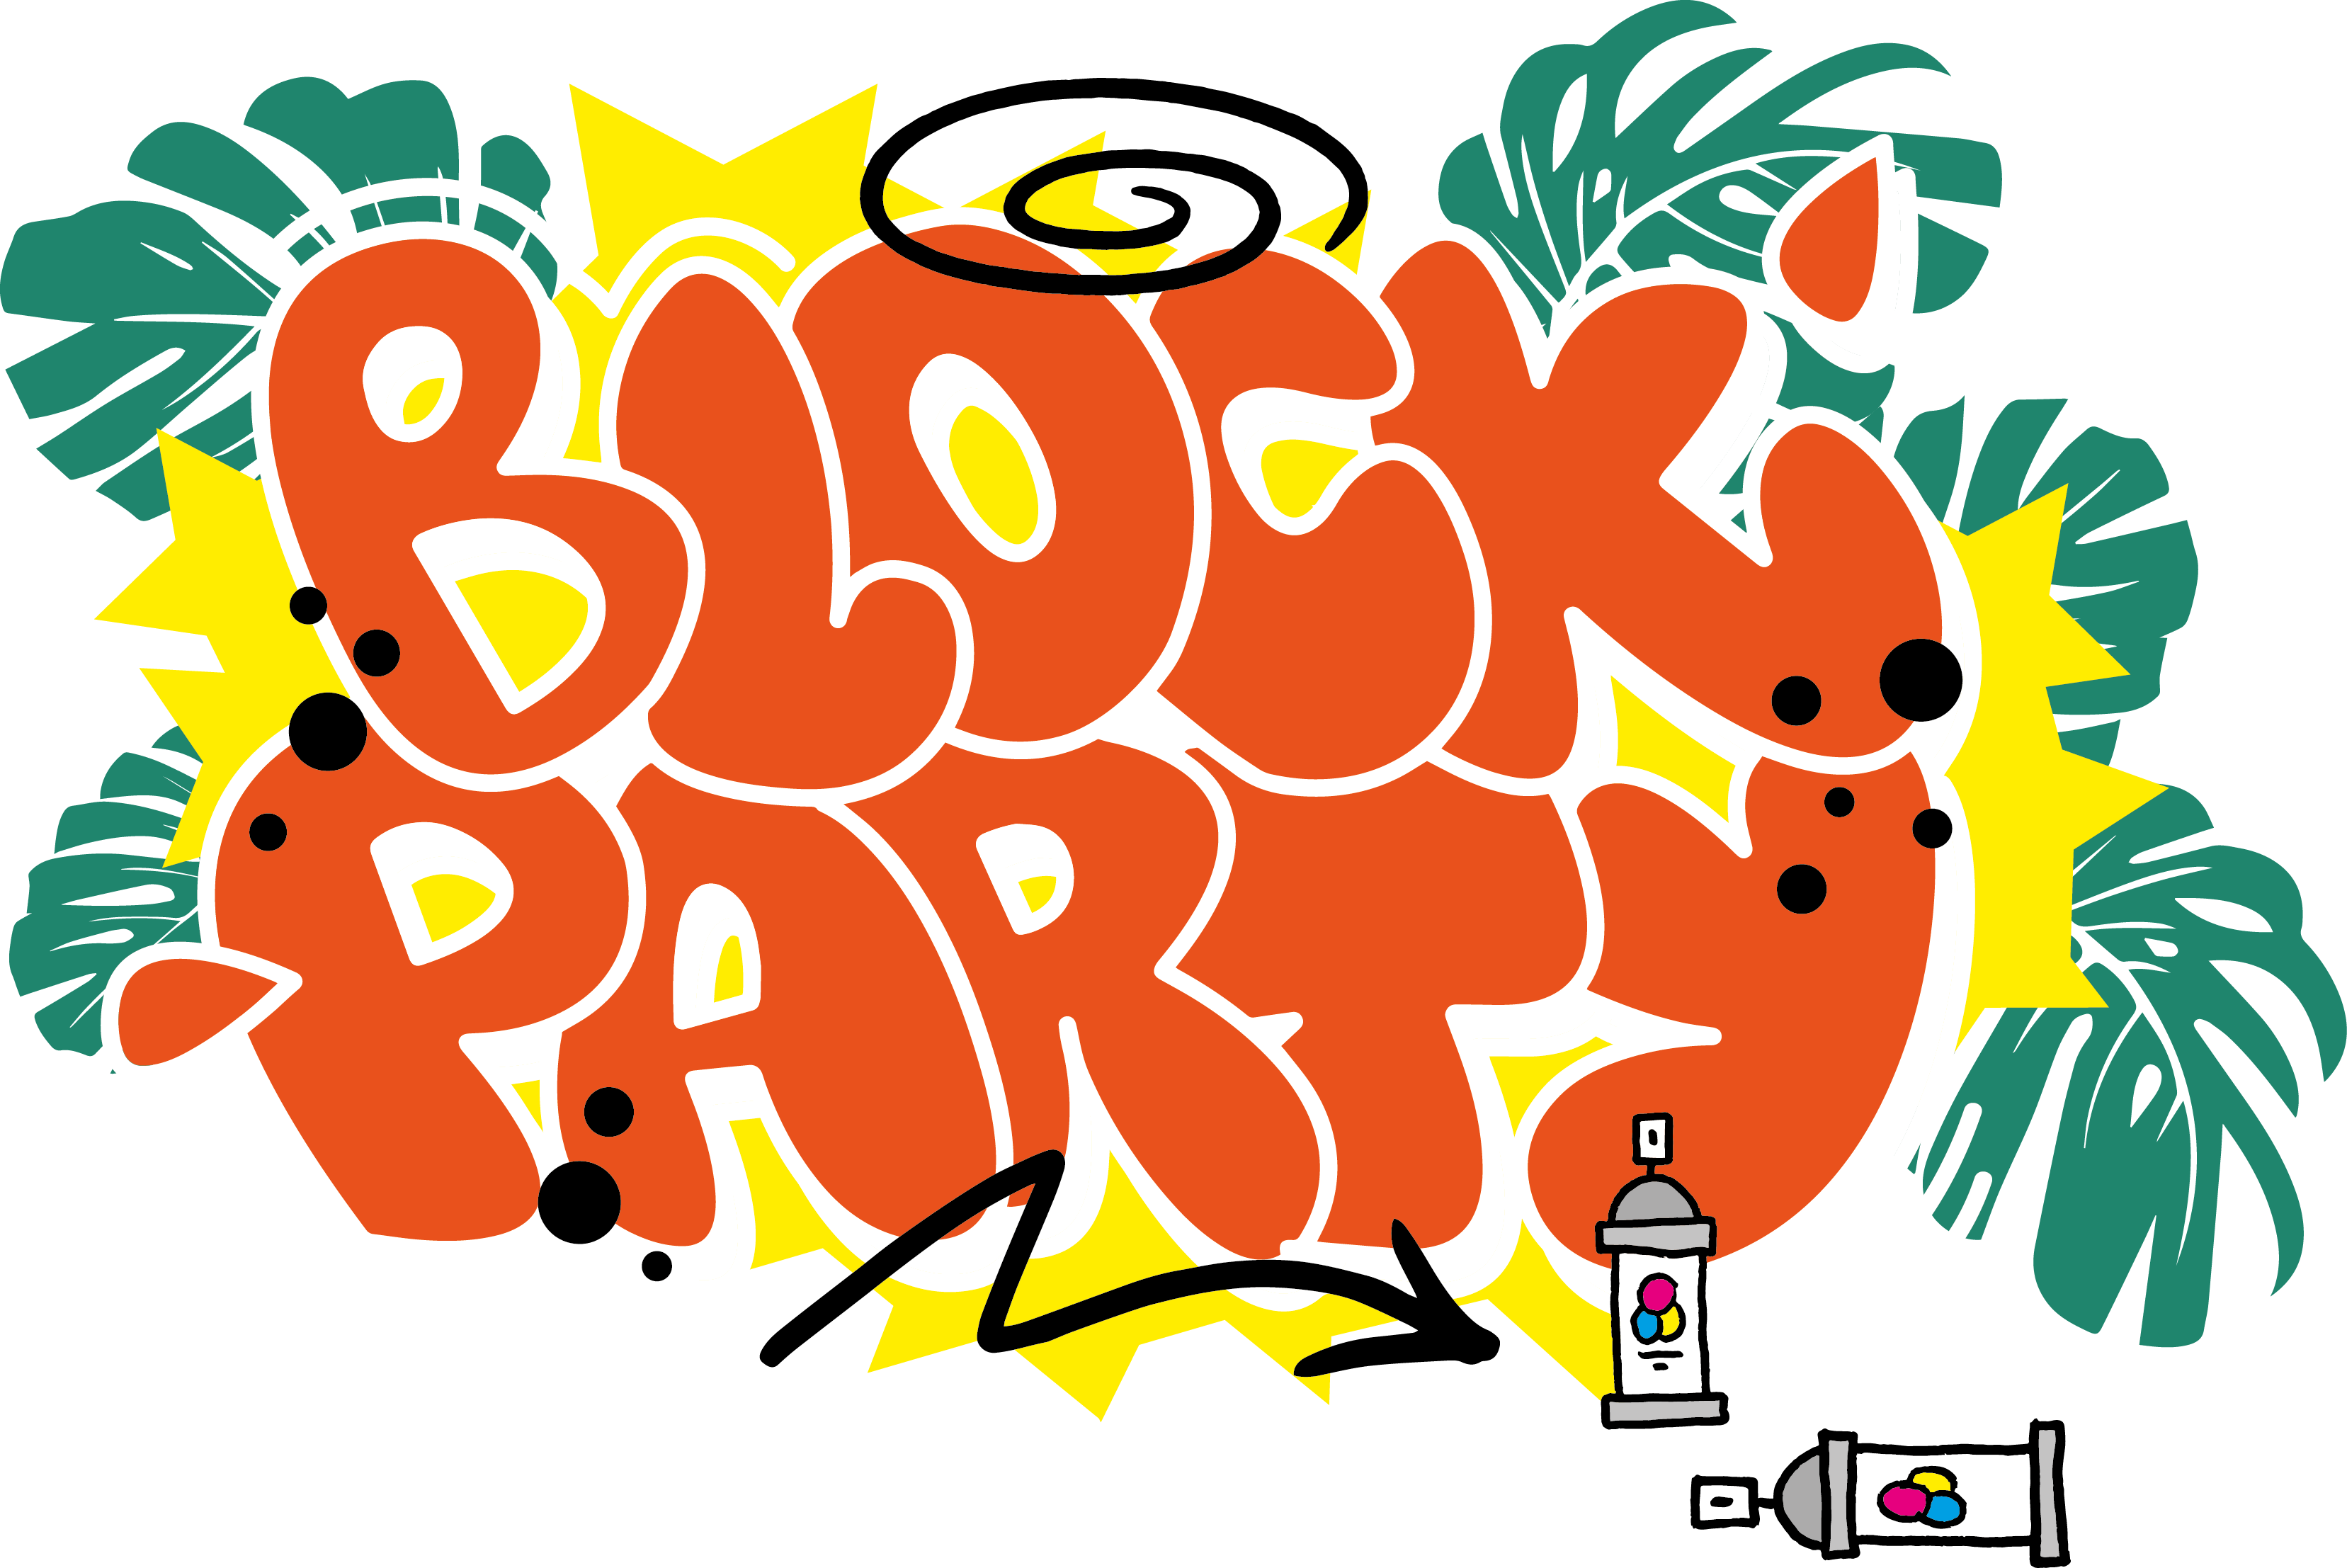 Blockparty 2019